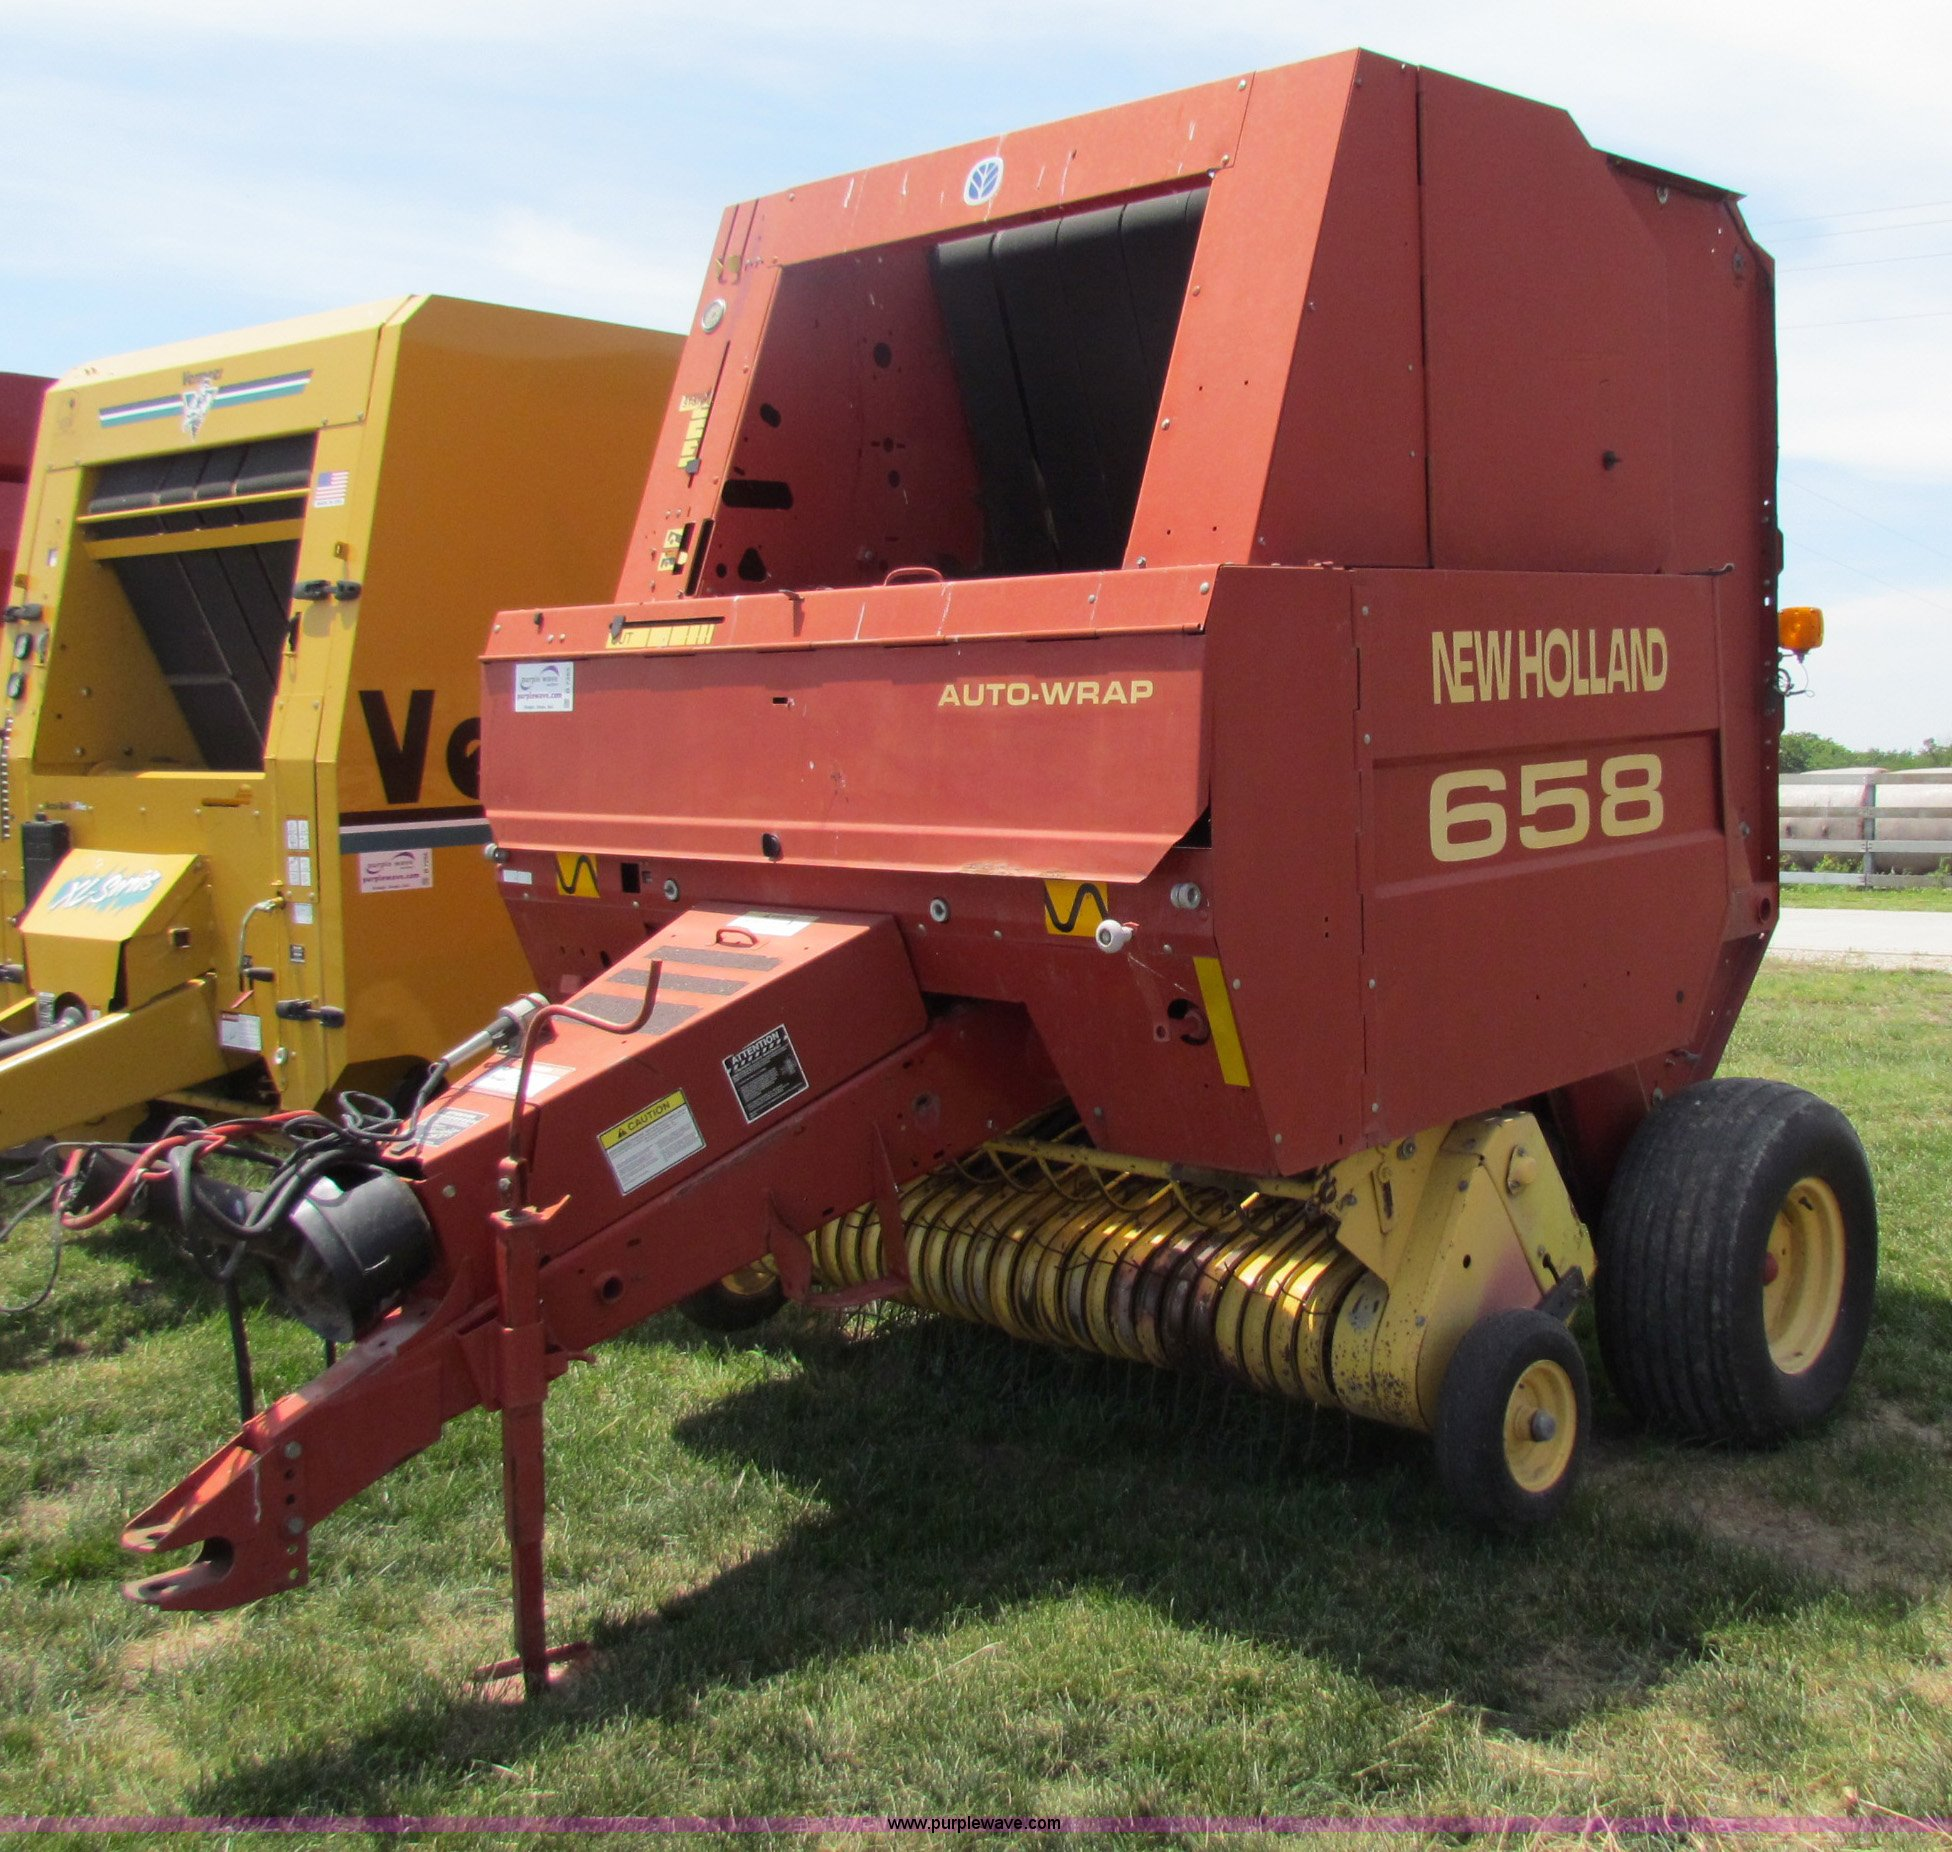 2000 new holland 658 round baler item b7265 sold june 1 rh purplewave com 630 New Holland Problems new holland 658 round baler specs